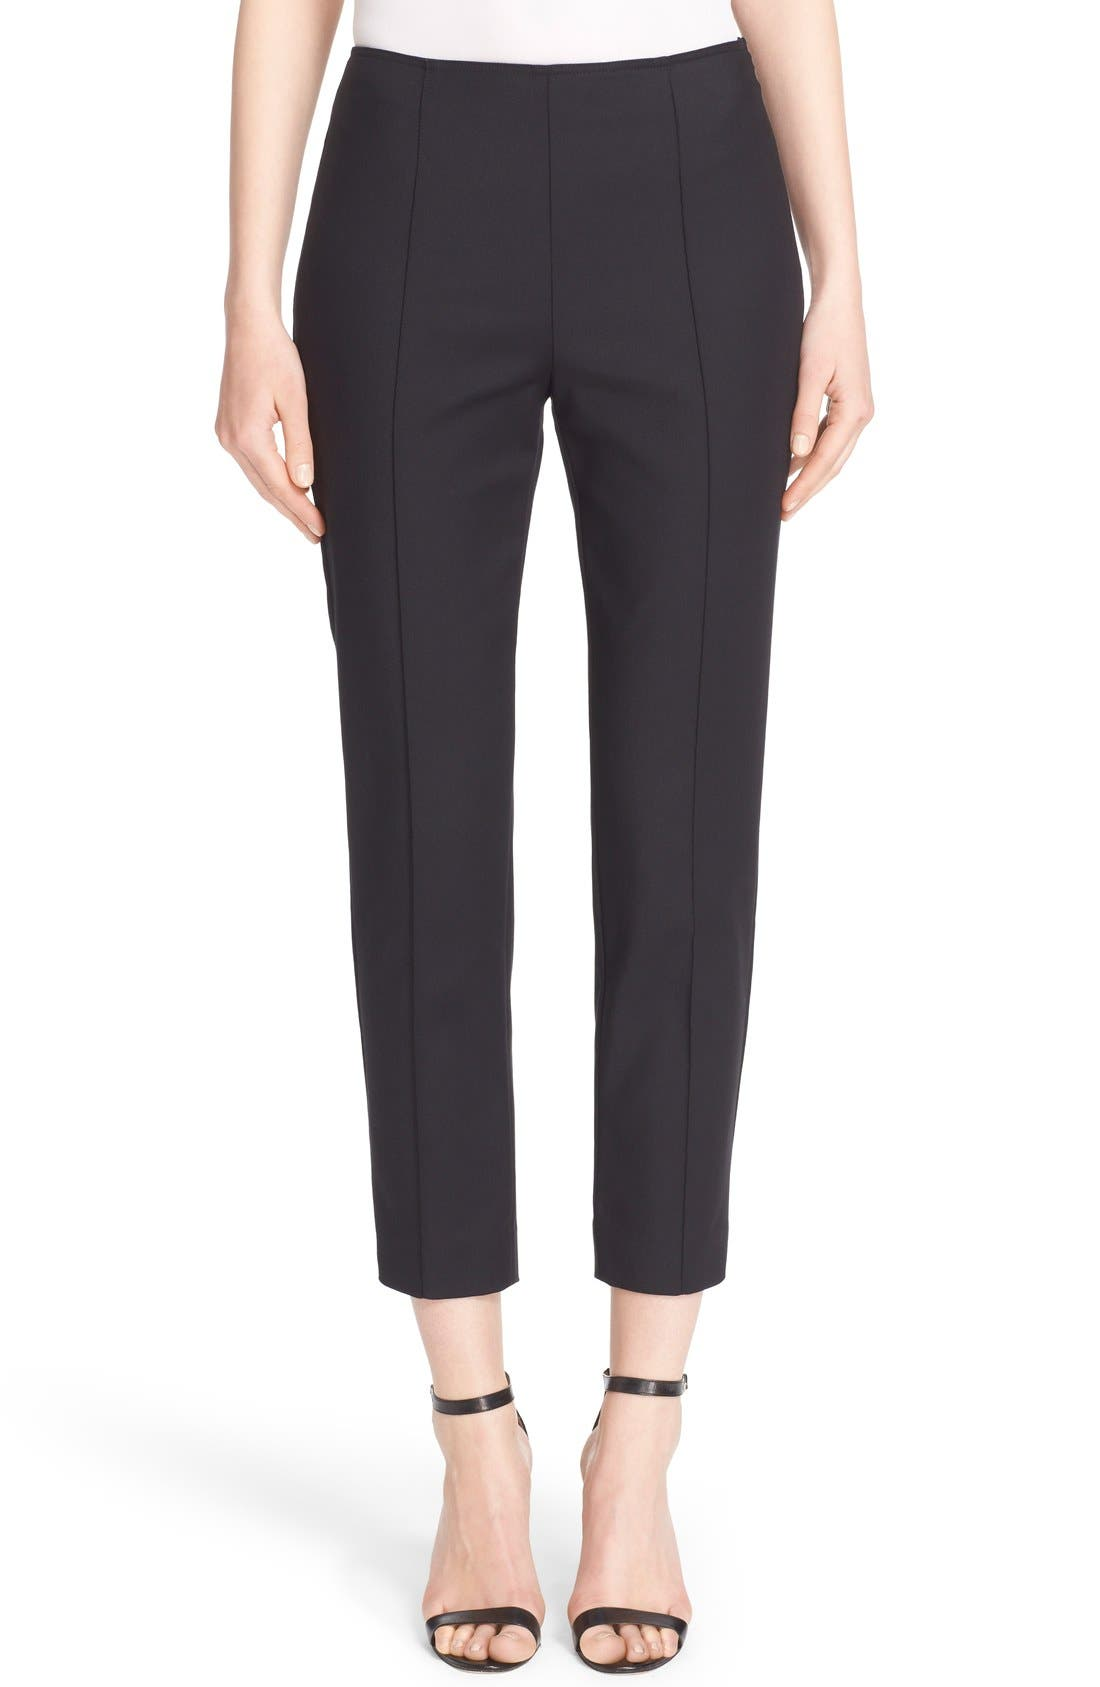 Alternate Image 1 Selected - John Collection 'Alexa' Stretch Micro Ottoman Ankle Pants